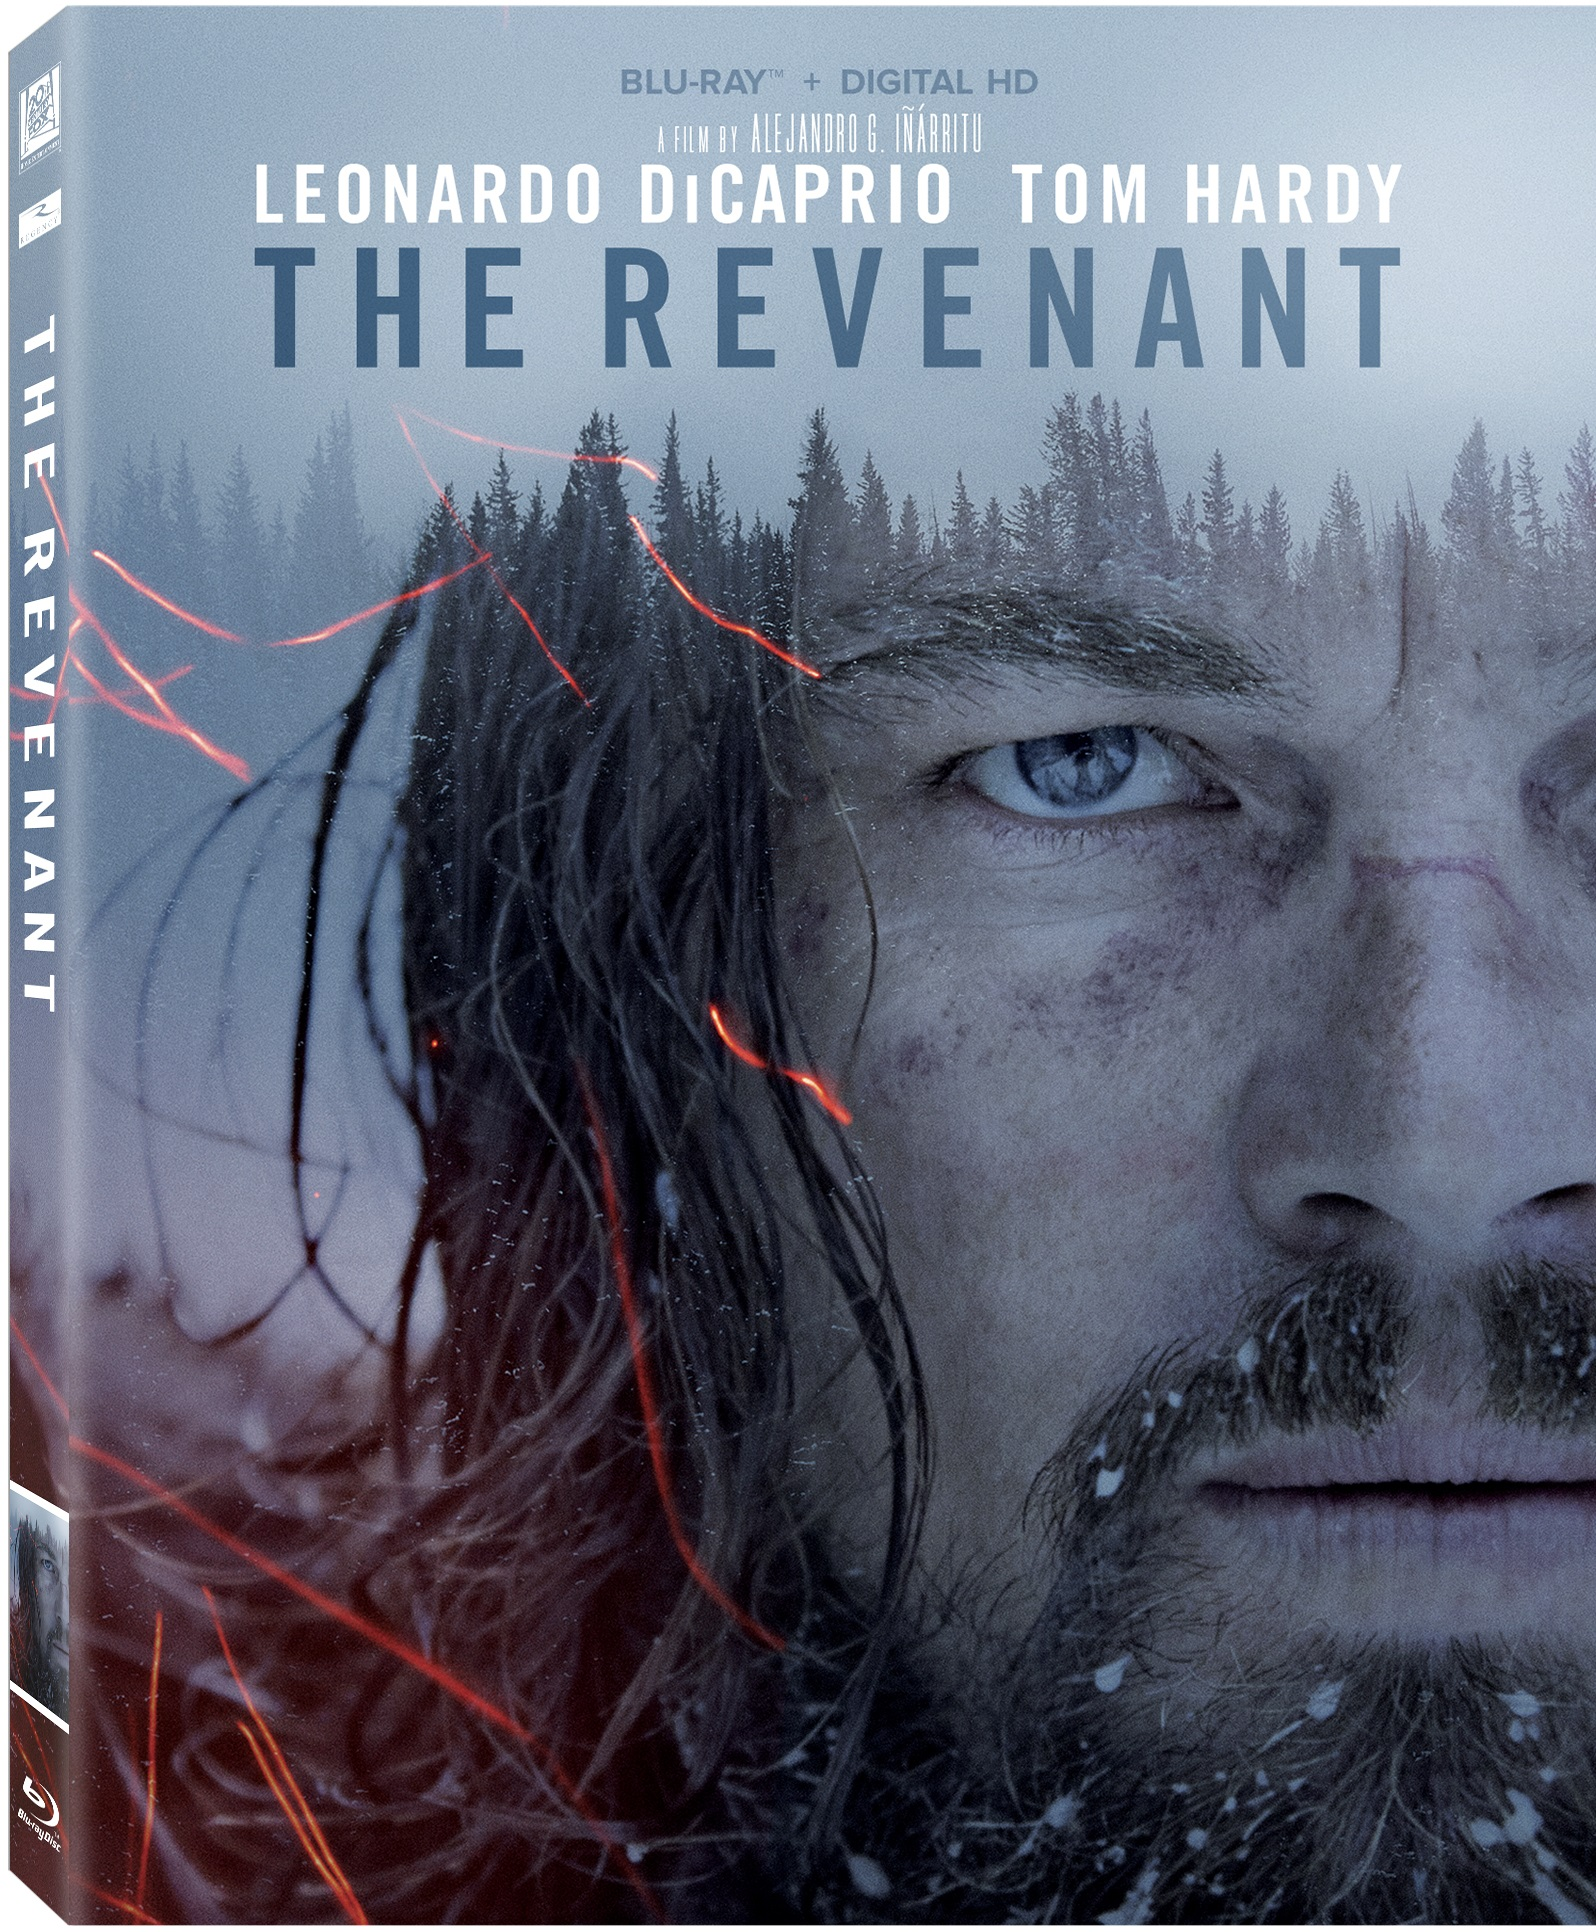 The Revenant is now available on Digital HD